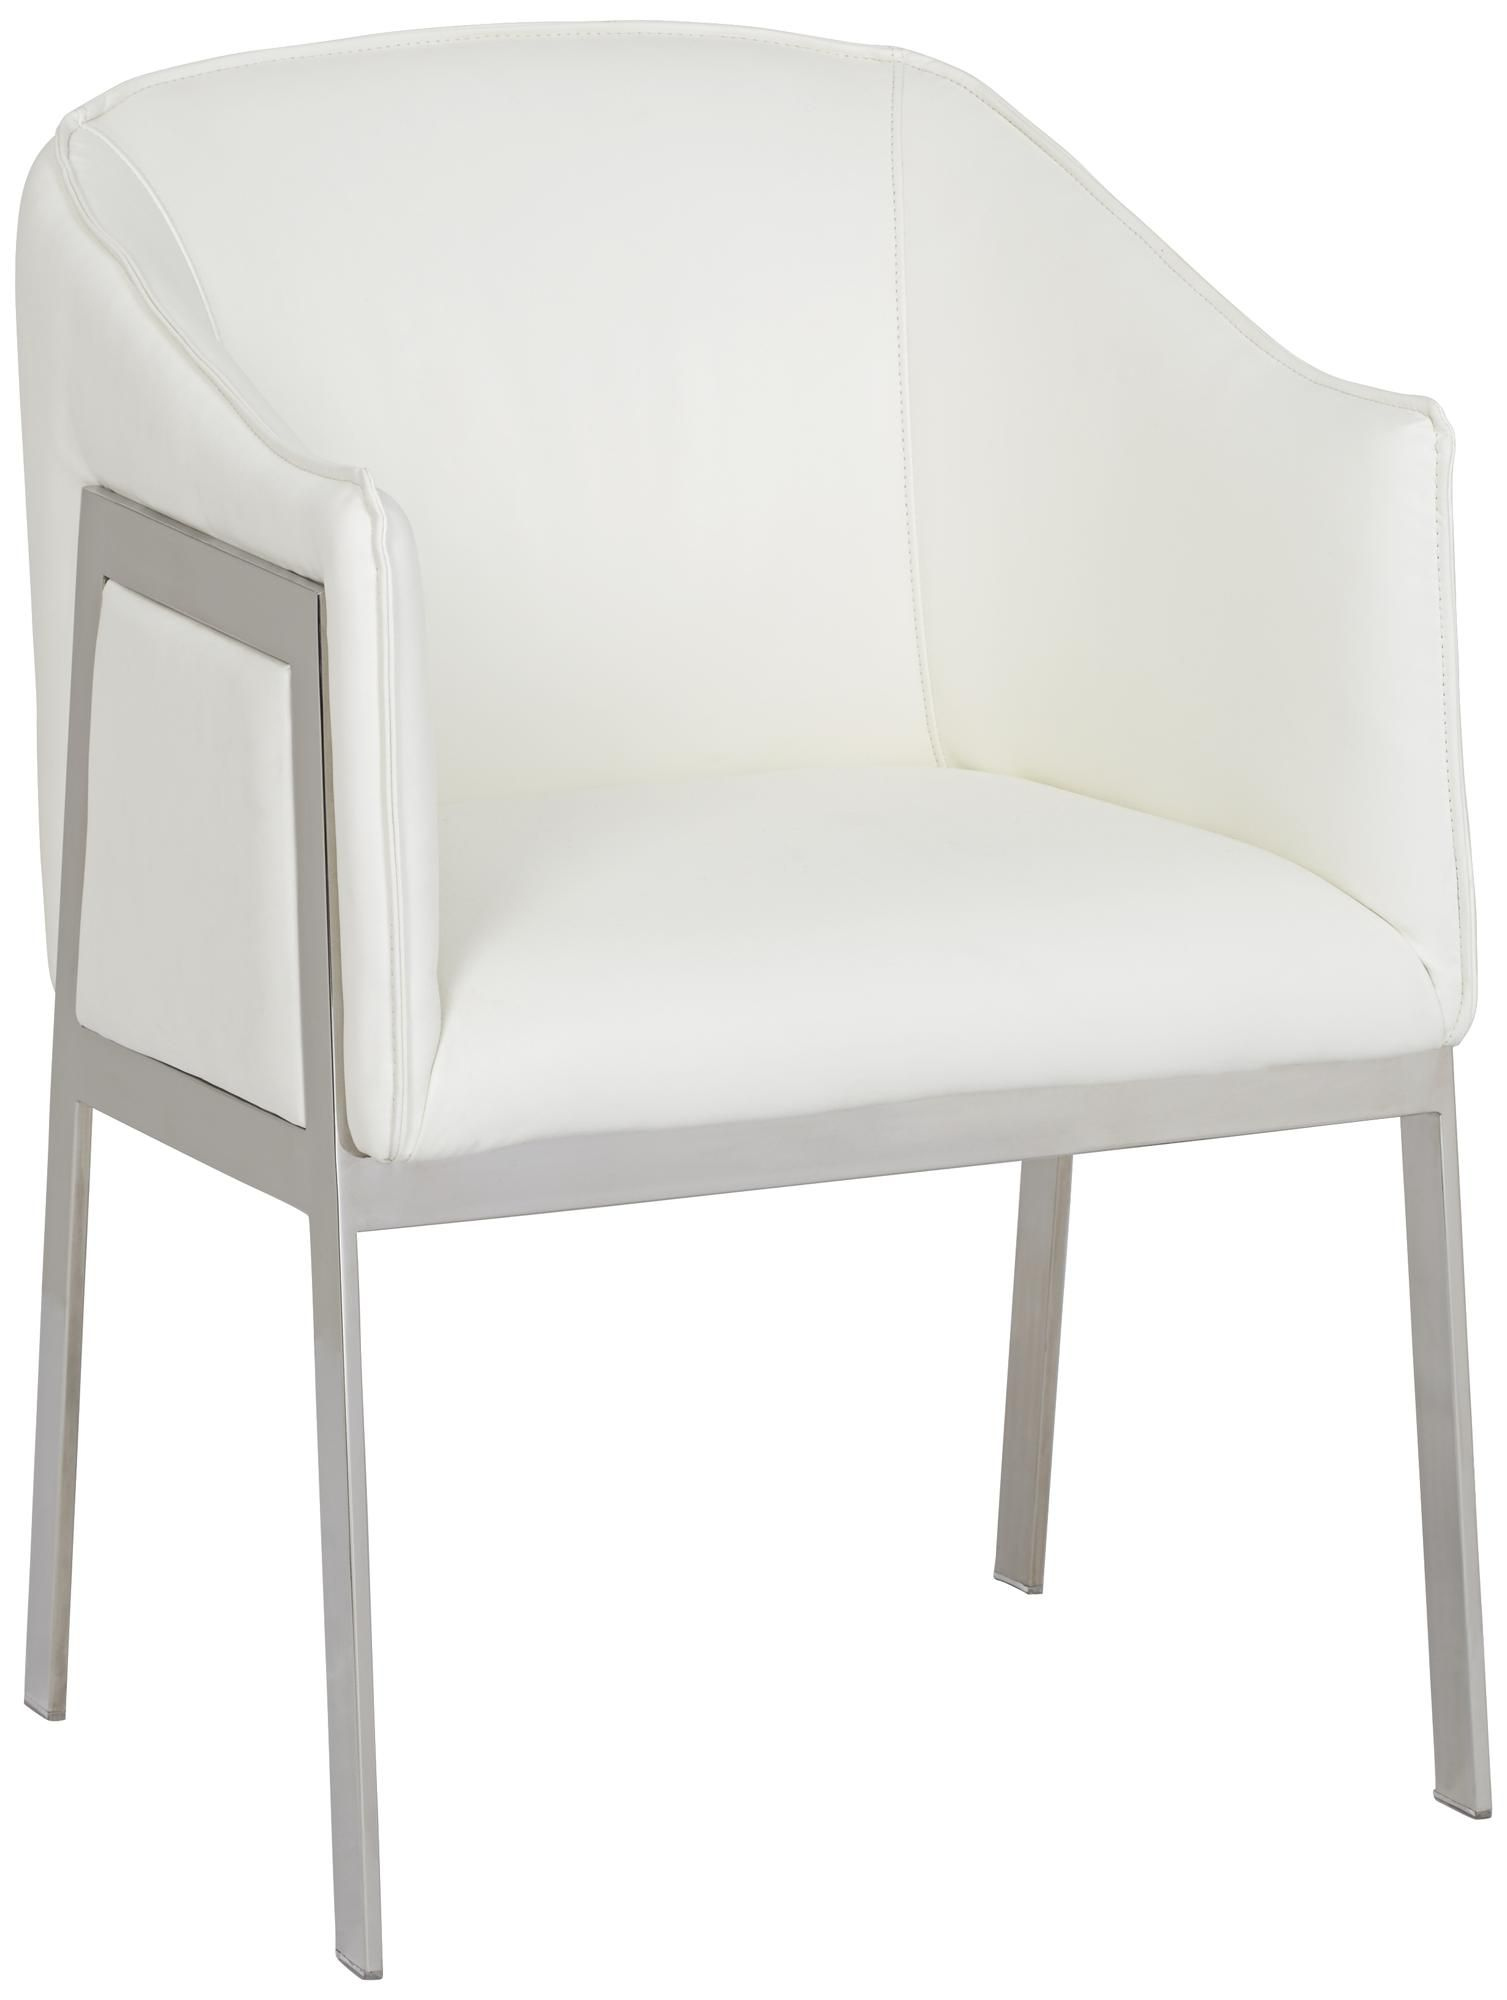 Outstanding Rialto Silver And White Armchair Quantum Plus Nature Alphanode Cool Chair Designs And Ideas Alphanodeonline